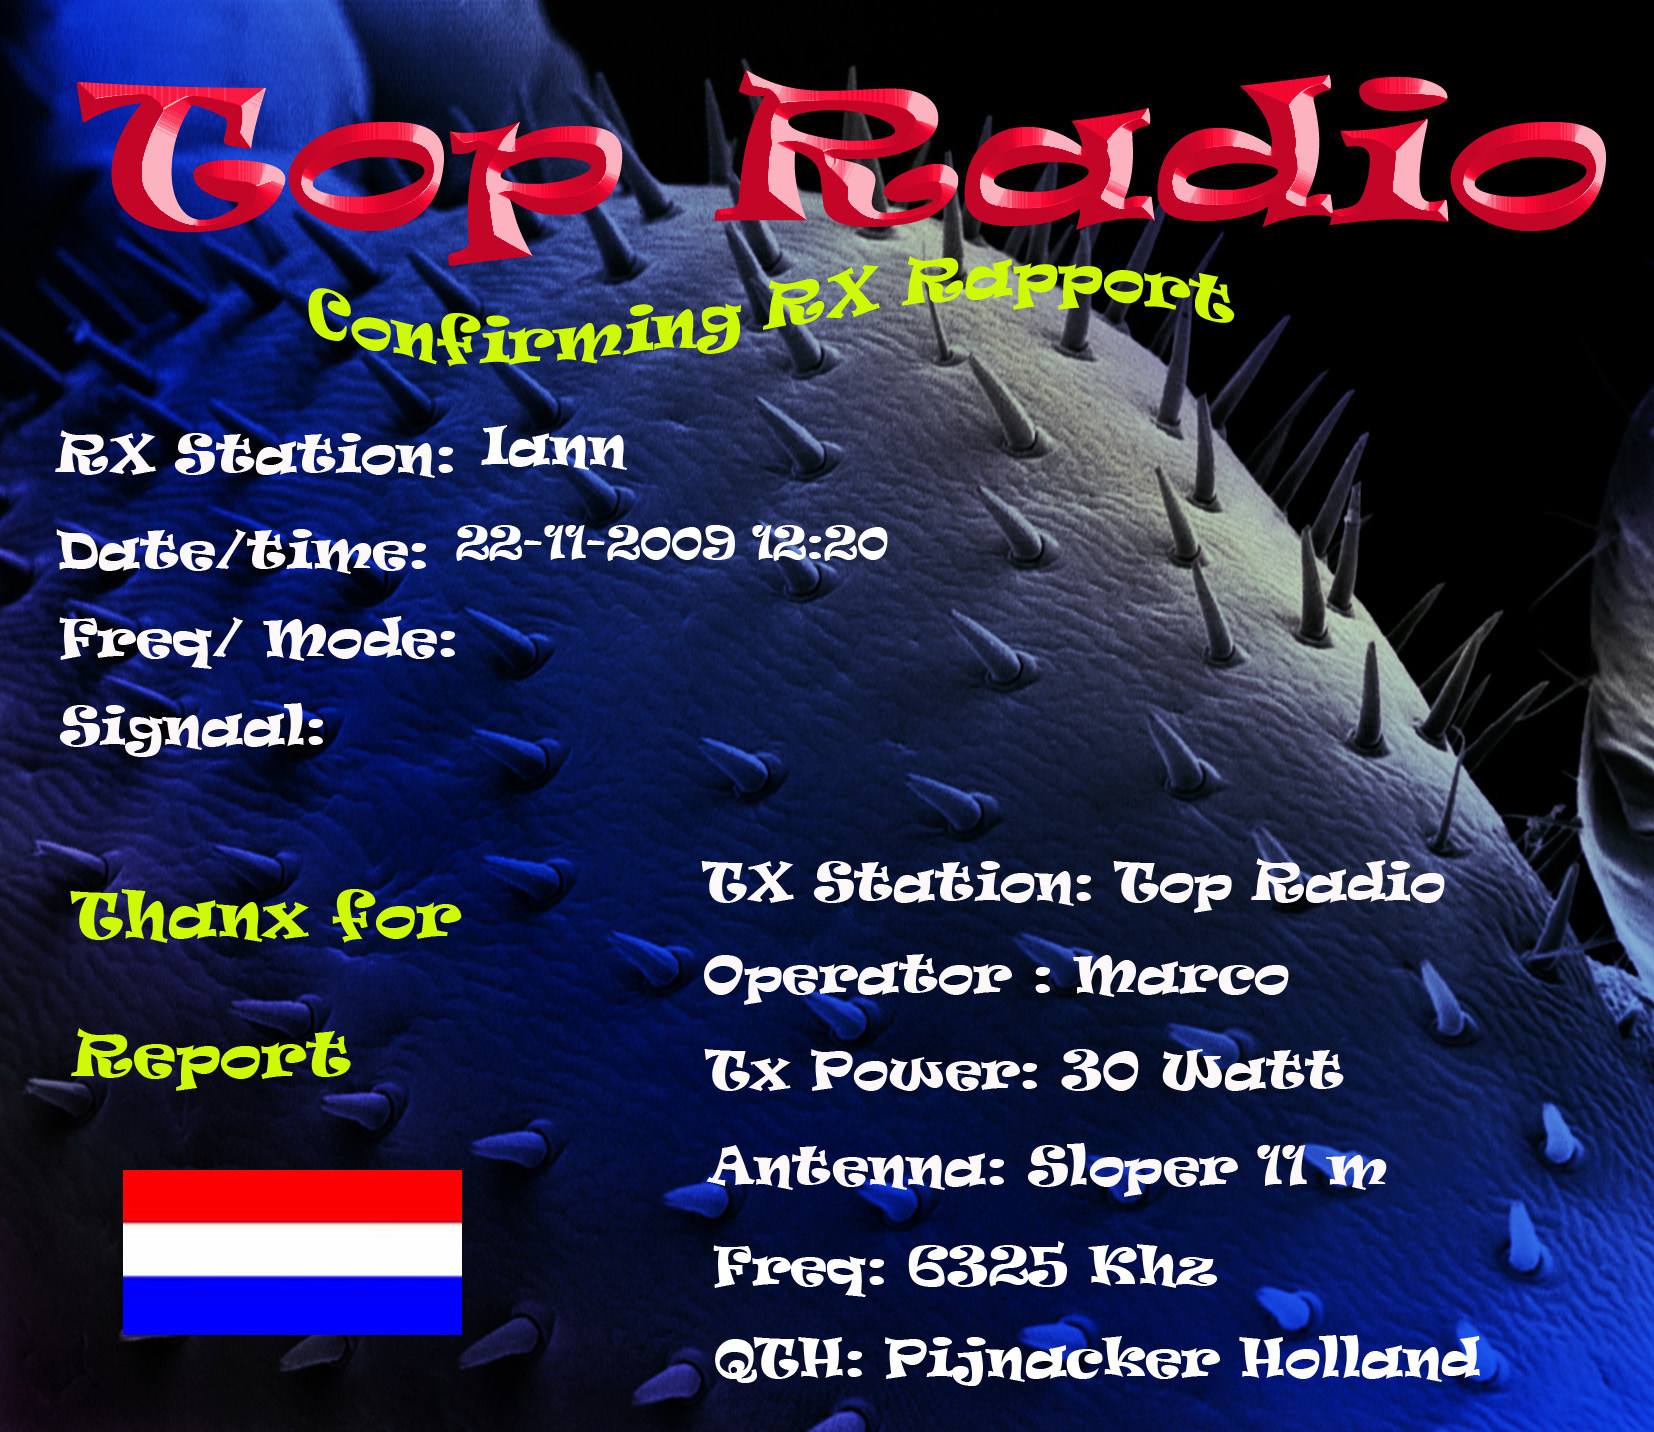 Pirate Radio QSL card - Top Radio